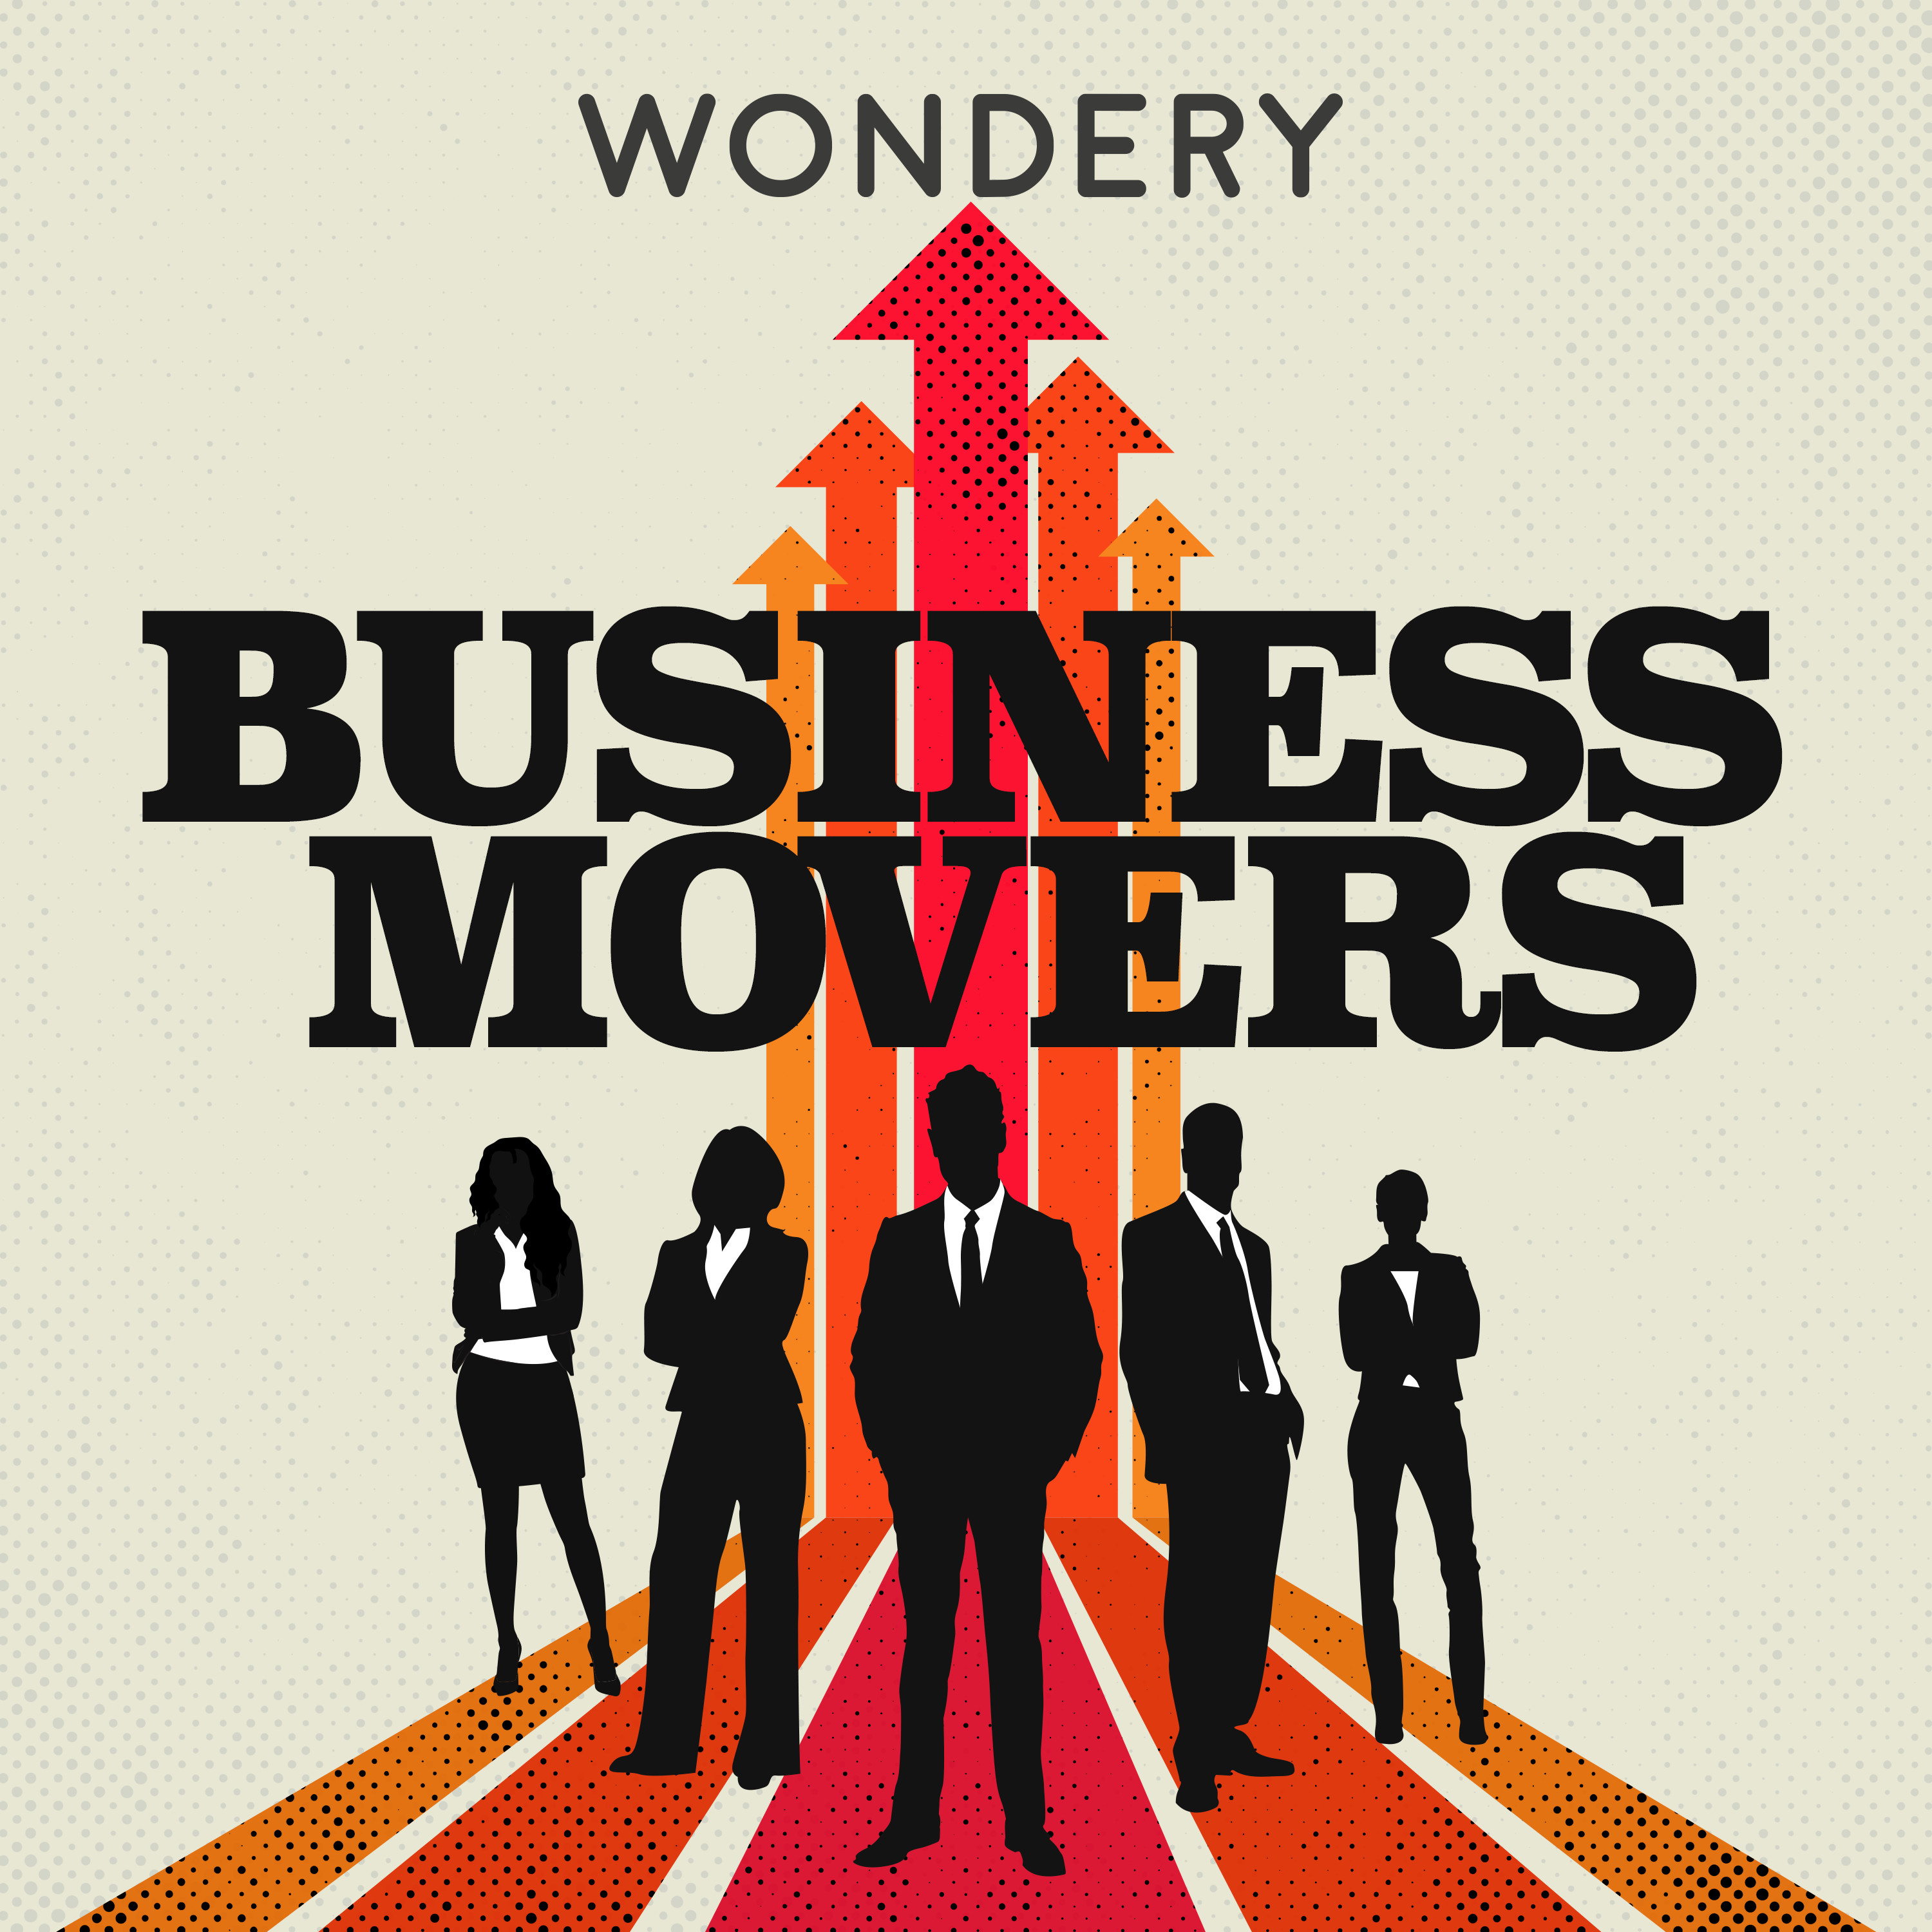 Introducing Business Movers